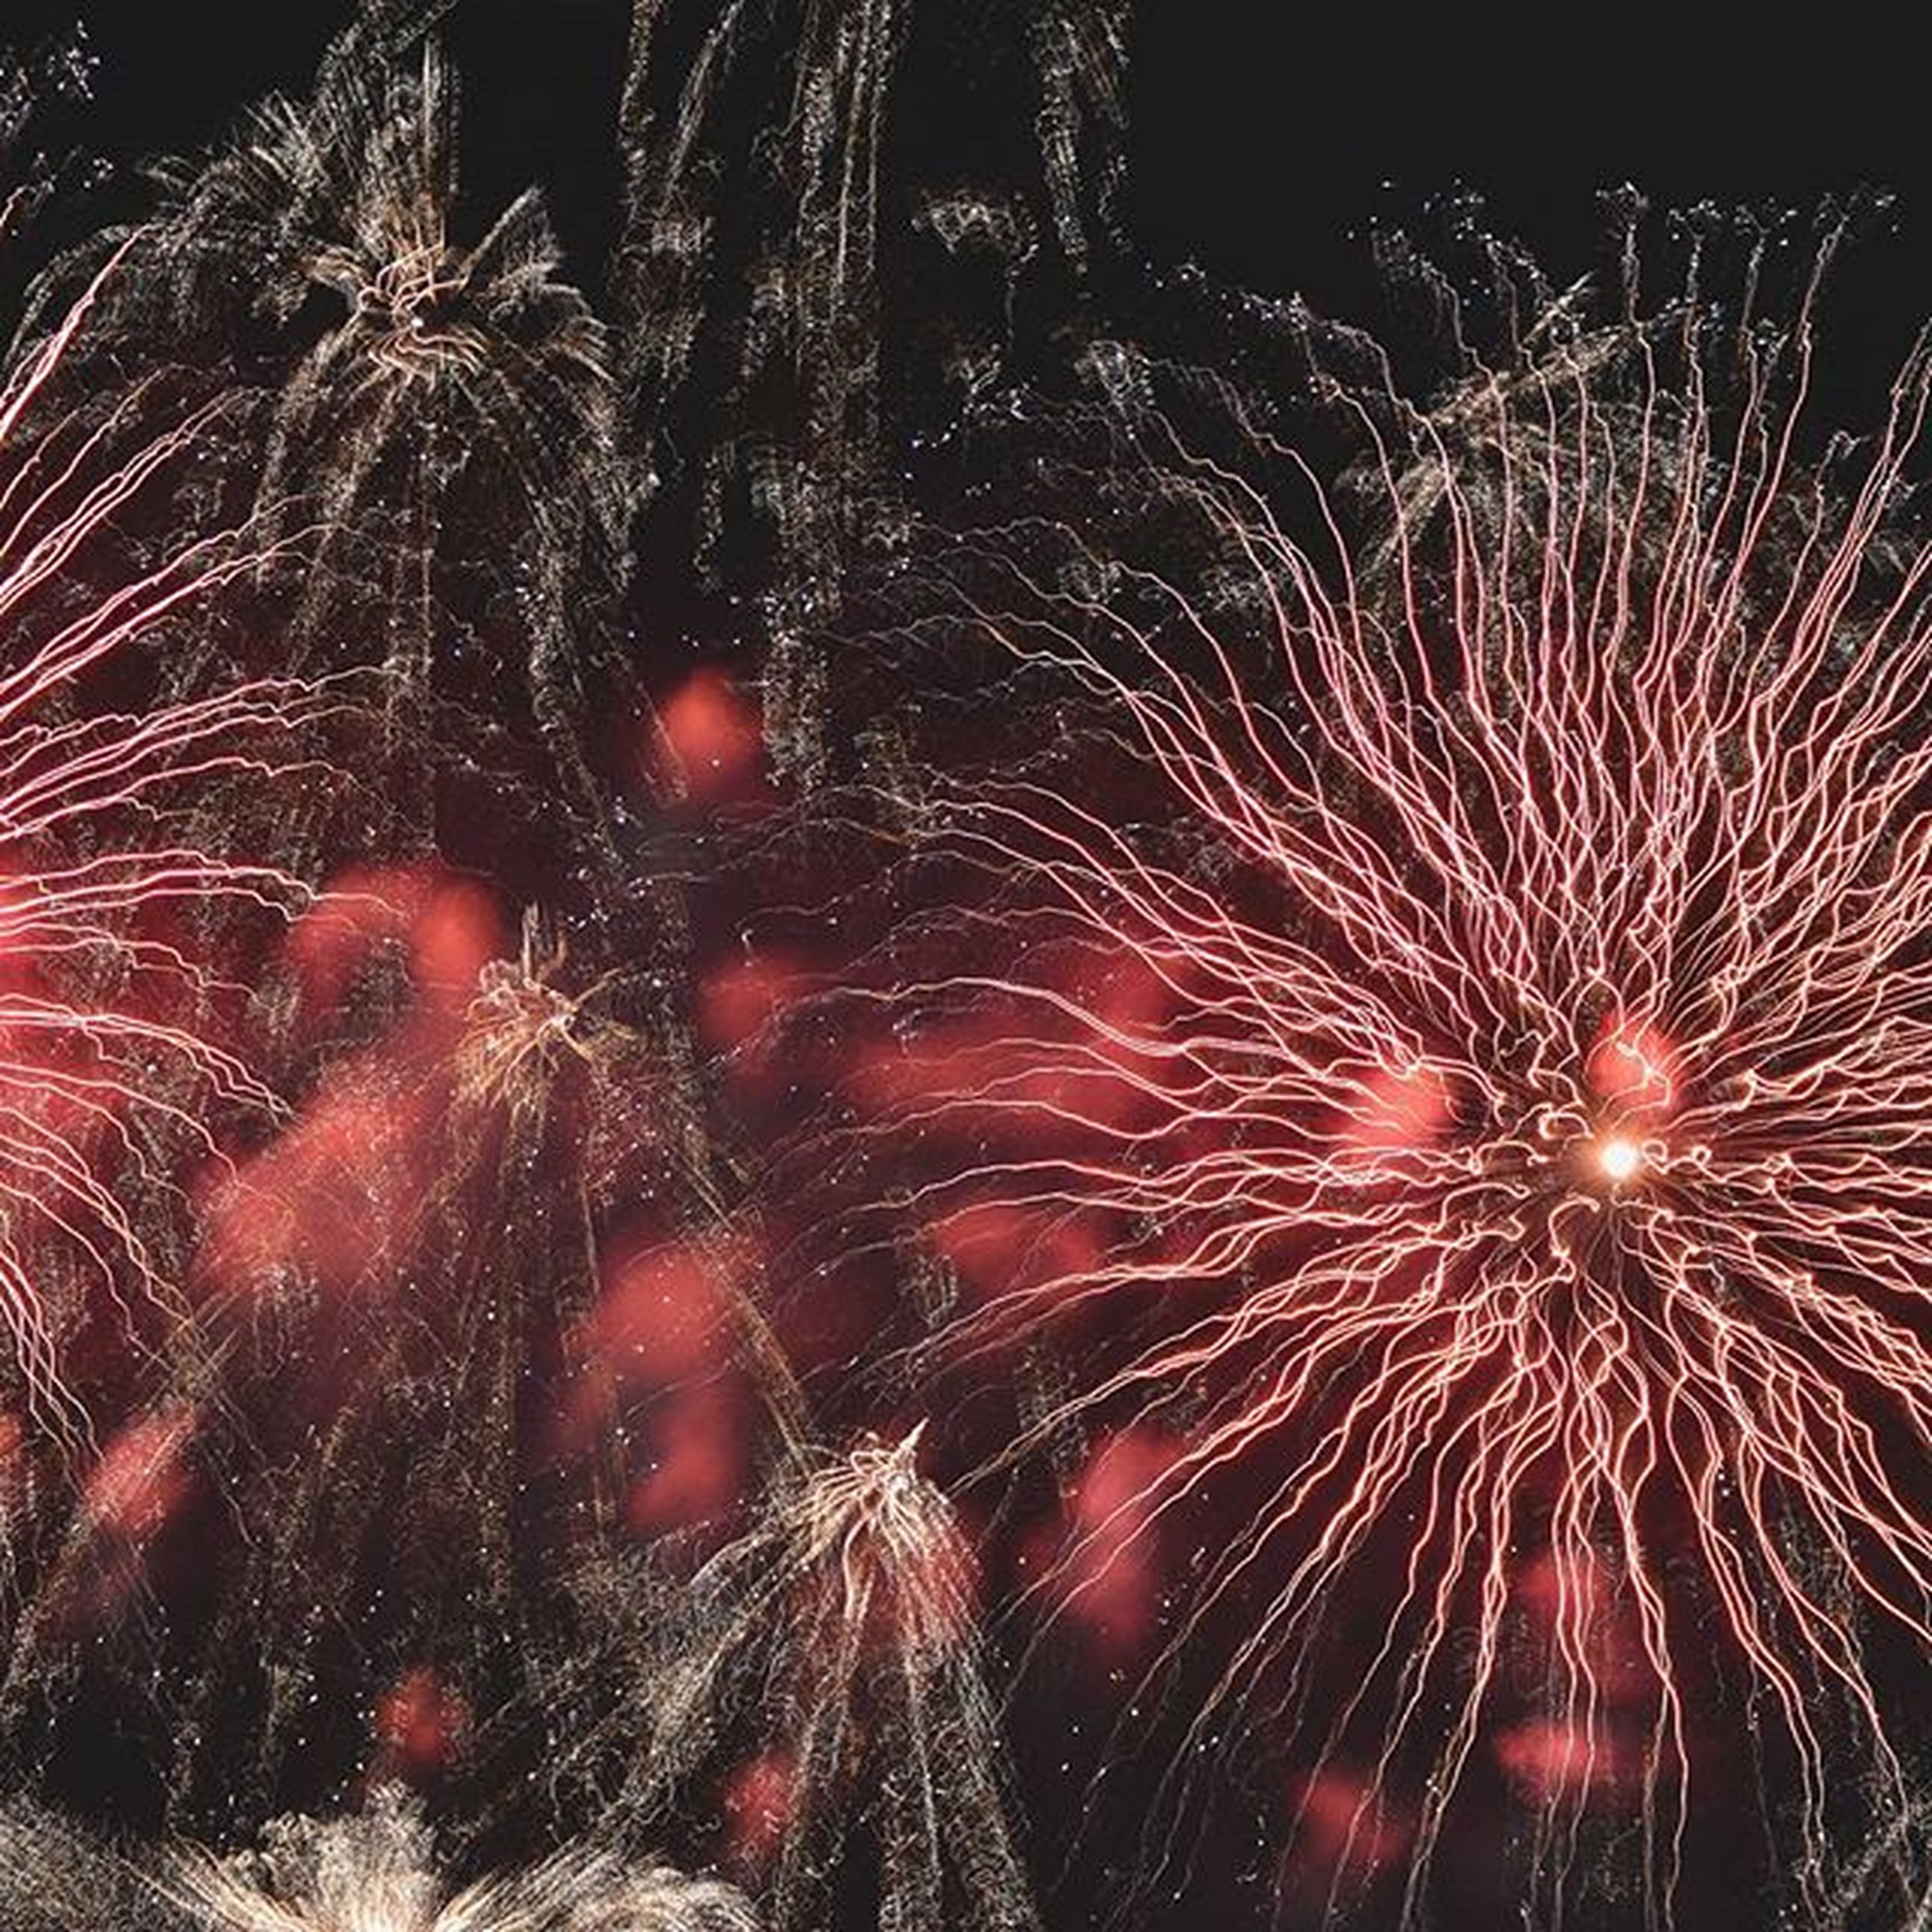 night, celebration, illuminated, firework display, long exposure, exploding, low angle view, motion, glowing, firework - man made object, sparks, event, arts culture and entertainment, red, blurred motion, firework, celebration event, entertainment, sky, outdoors